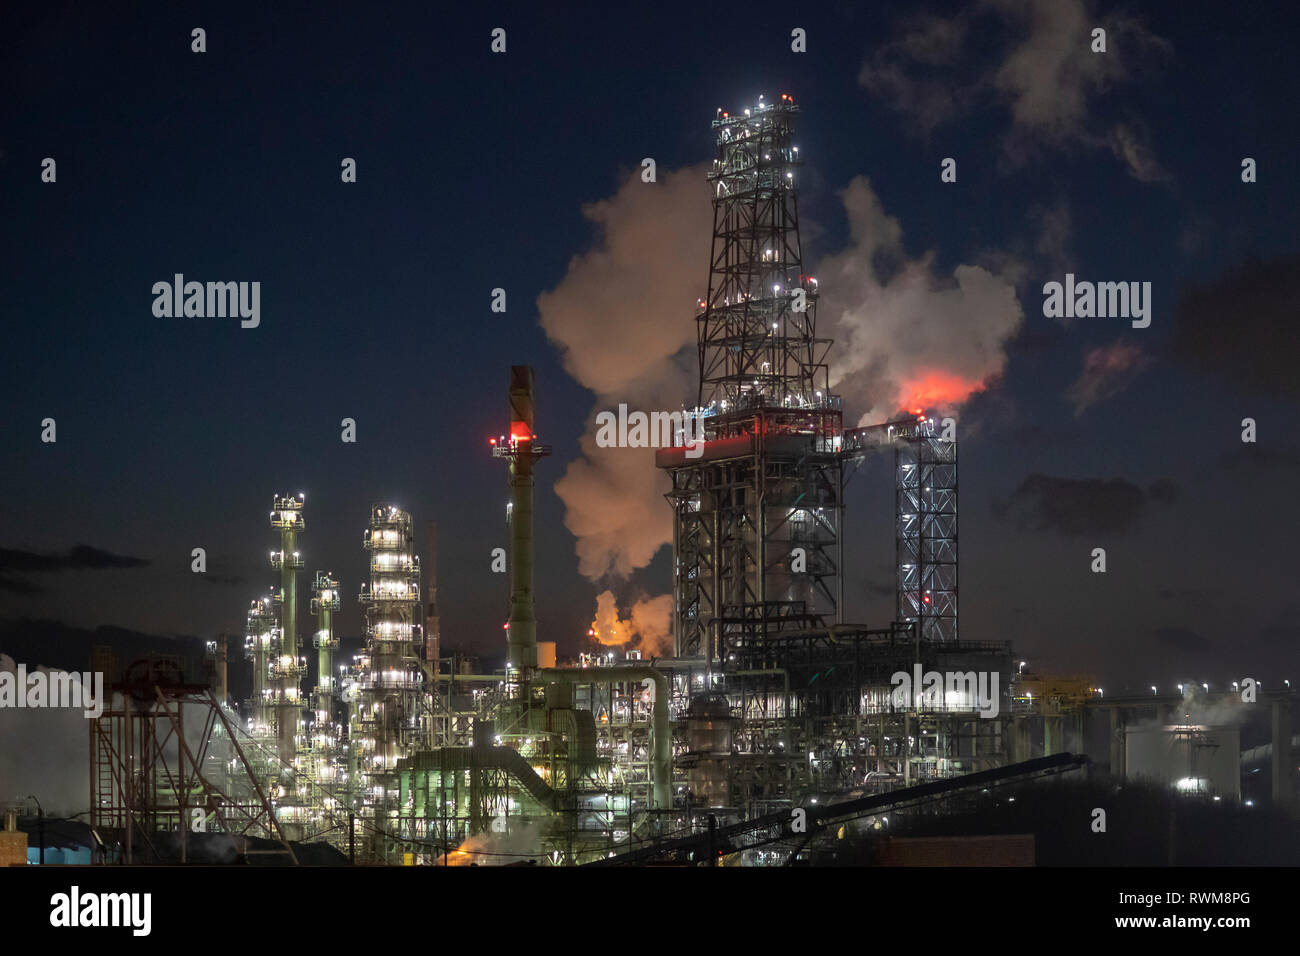 Detroit, Michigan - The Marathon Petroleum Refinery. The refinery processes heavy crude oil from Canada's tar sands. Stock Photo